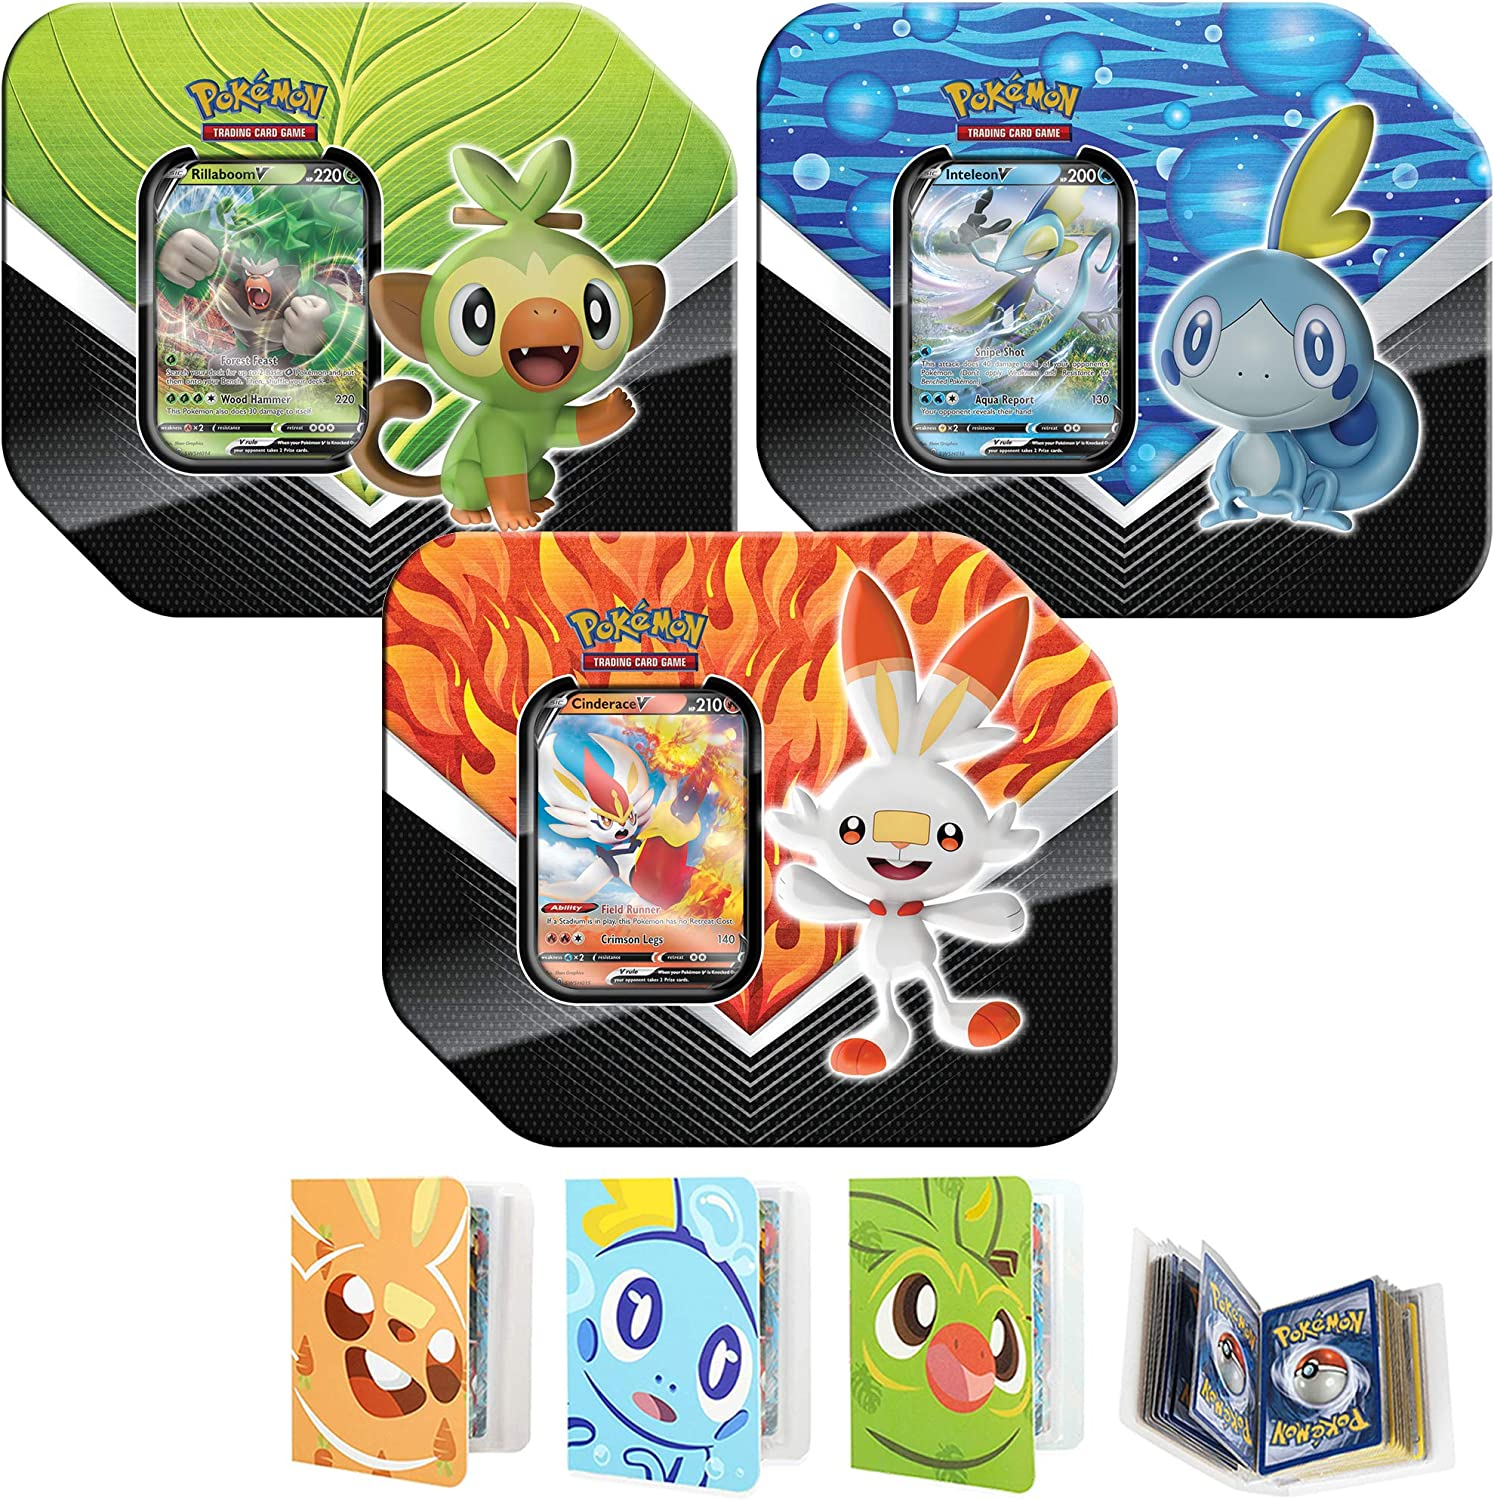 Totem World All 3 Sword Shield Galar Partners Tin Rillaboom Cinderace Inteleon V Set With 3 Totem Mini Album Binder Grookey Scorbunny Sobble Perfect For Pokemon Cards Decks Sets Amazon Canada I opened up this really cool grookey tin that comes with 5. totem world all 3 sword shield galar